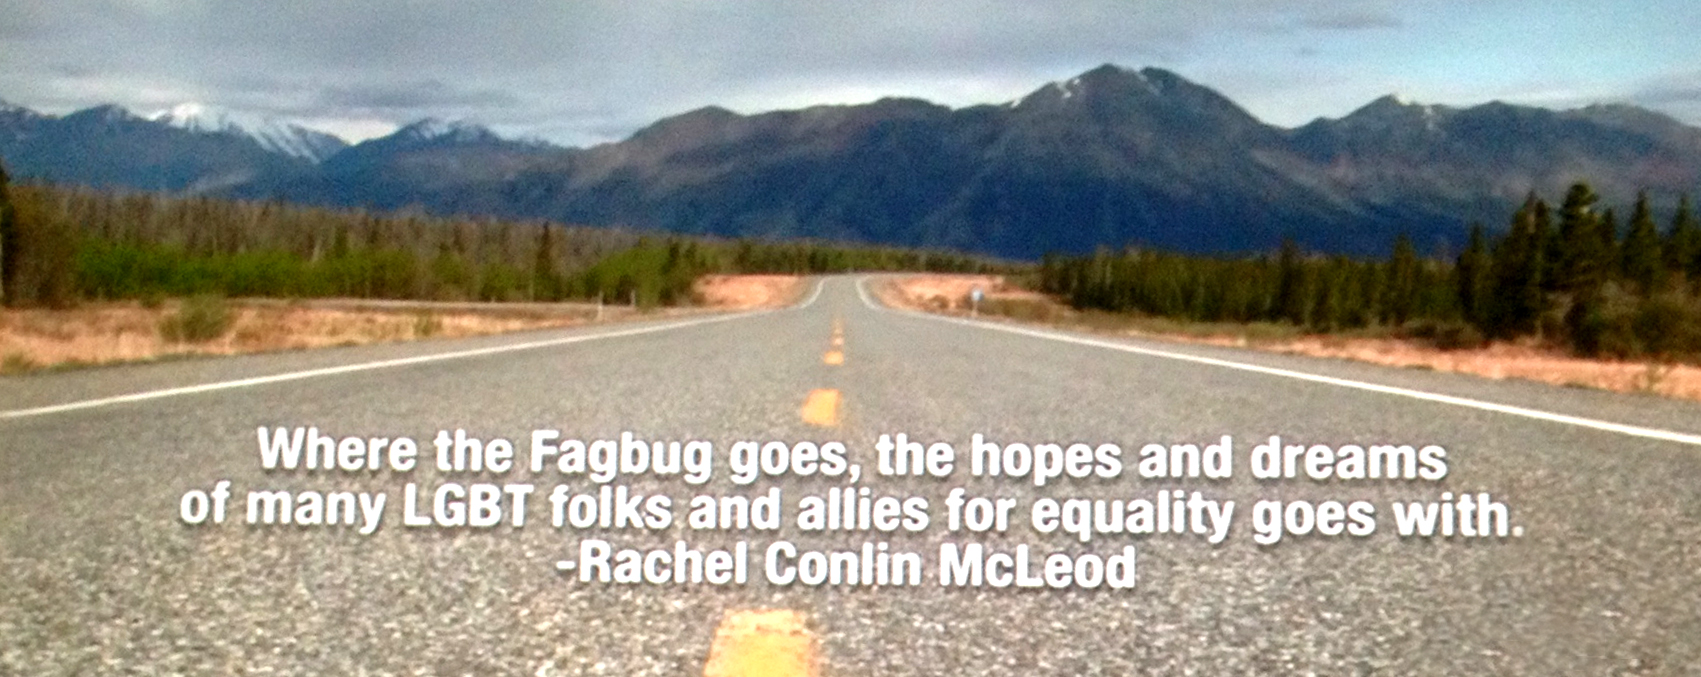 FAGBUG NATION QUOTE